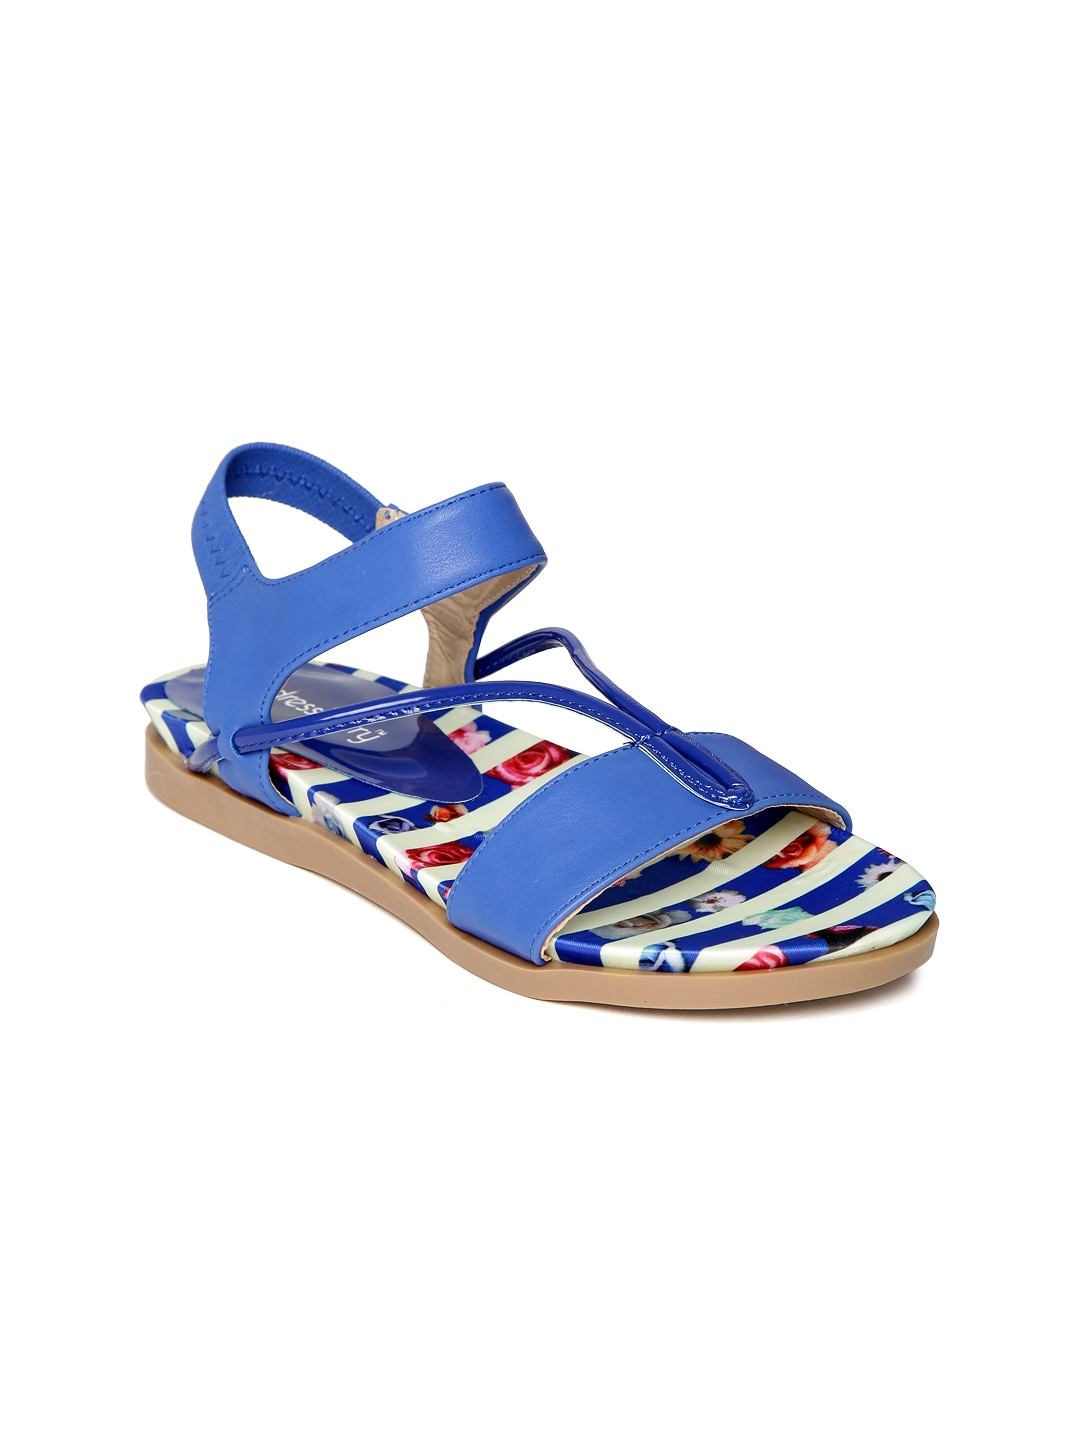 DressBerry Women Blue Sandals